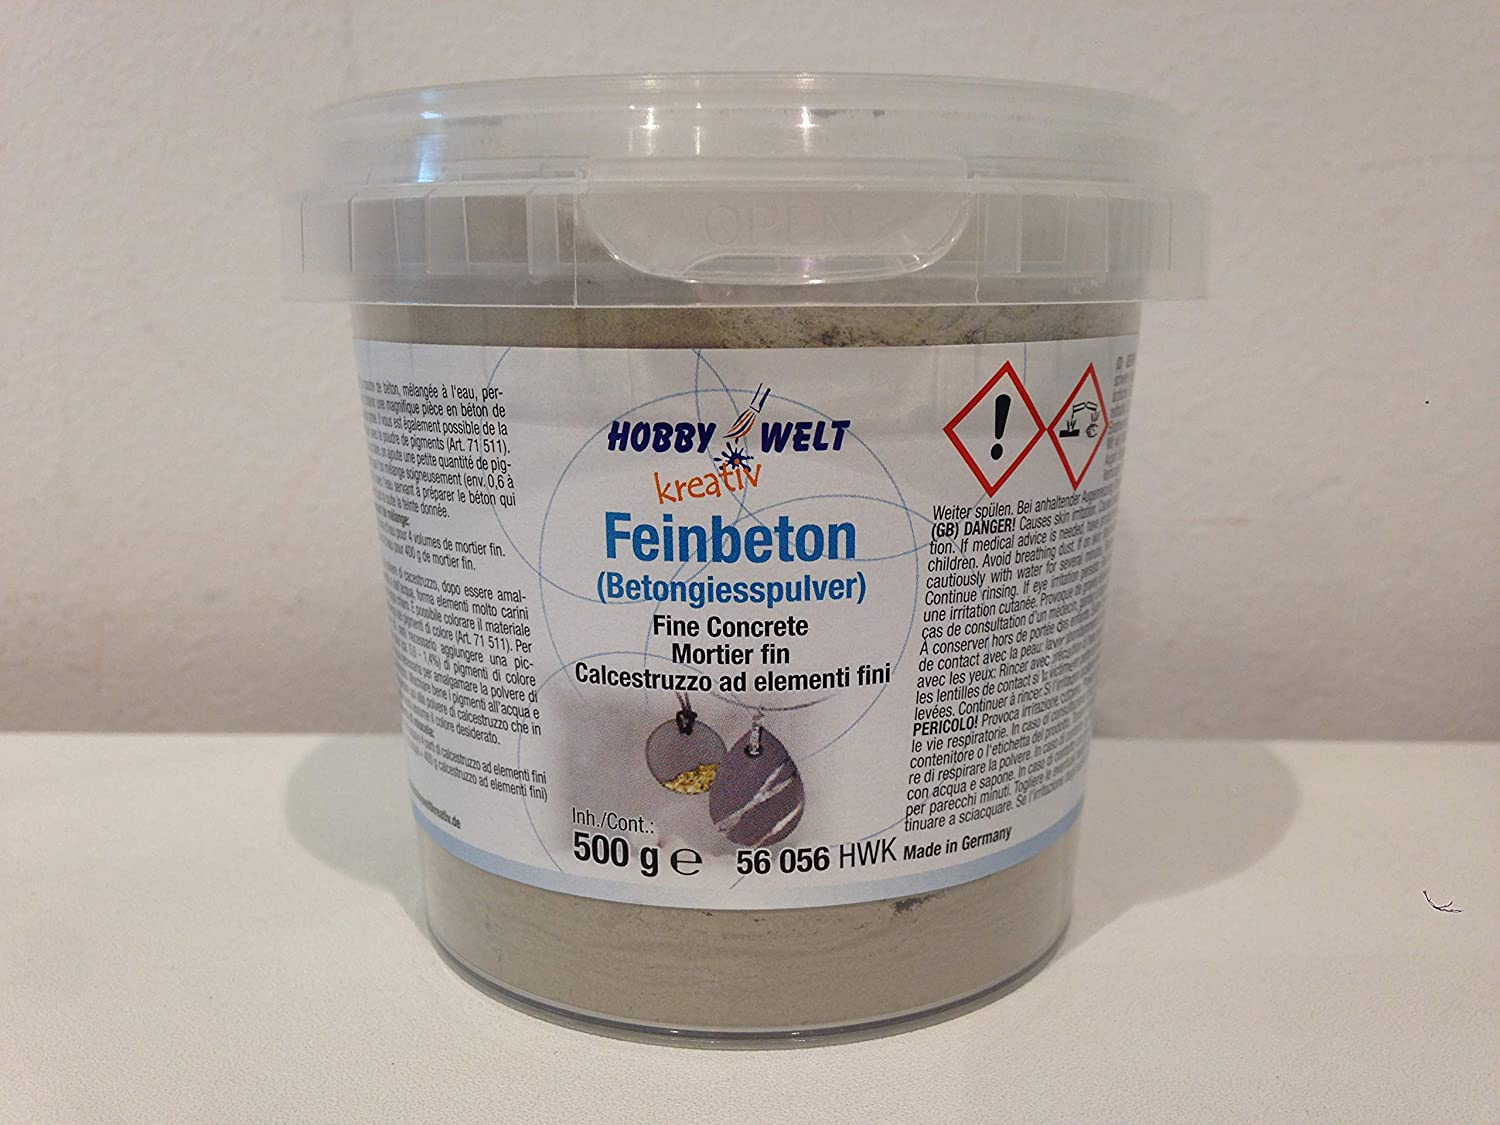 Hobby World Creative Fine Concrete Concrete (Concrete Casting Powder), 500 g, Made in Germany Creartec Artidee